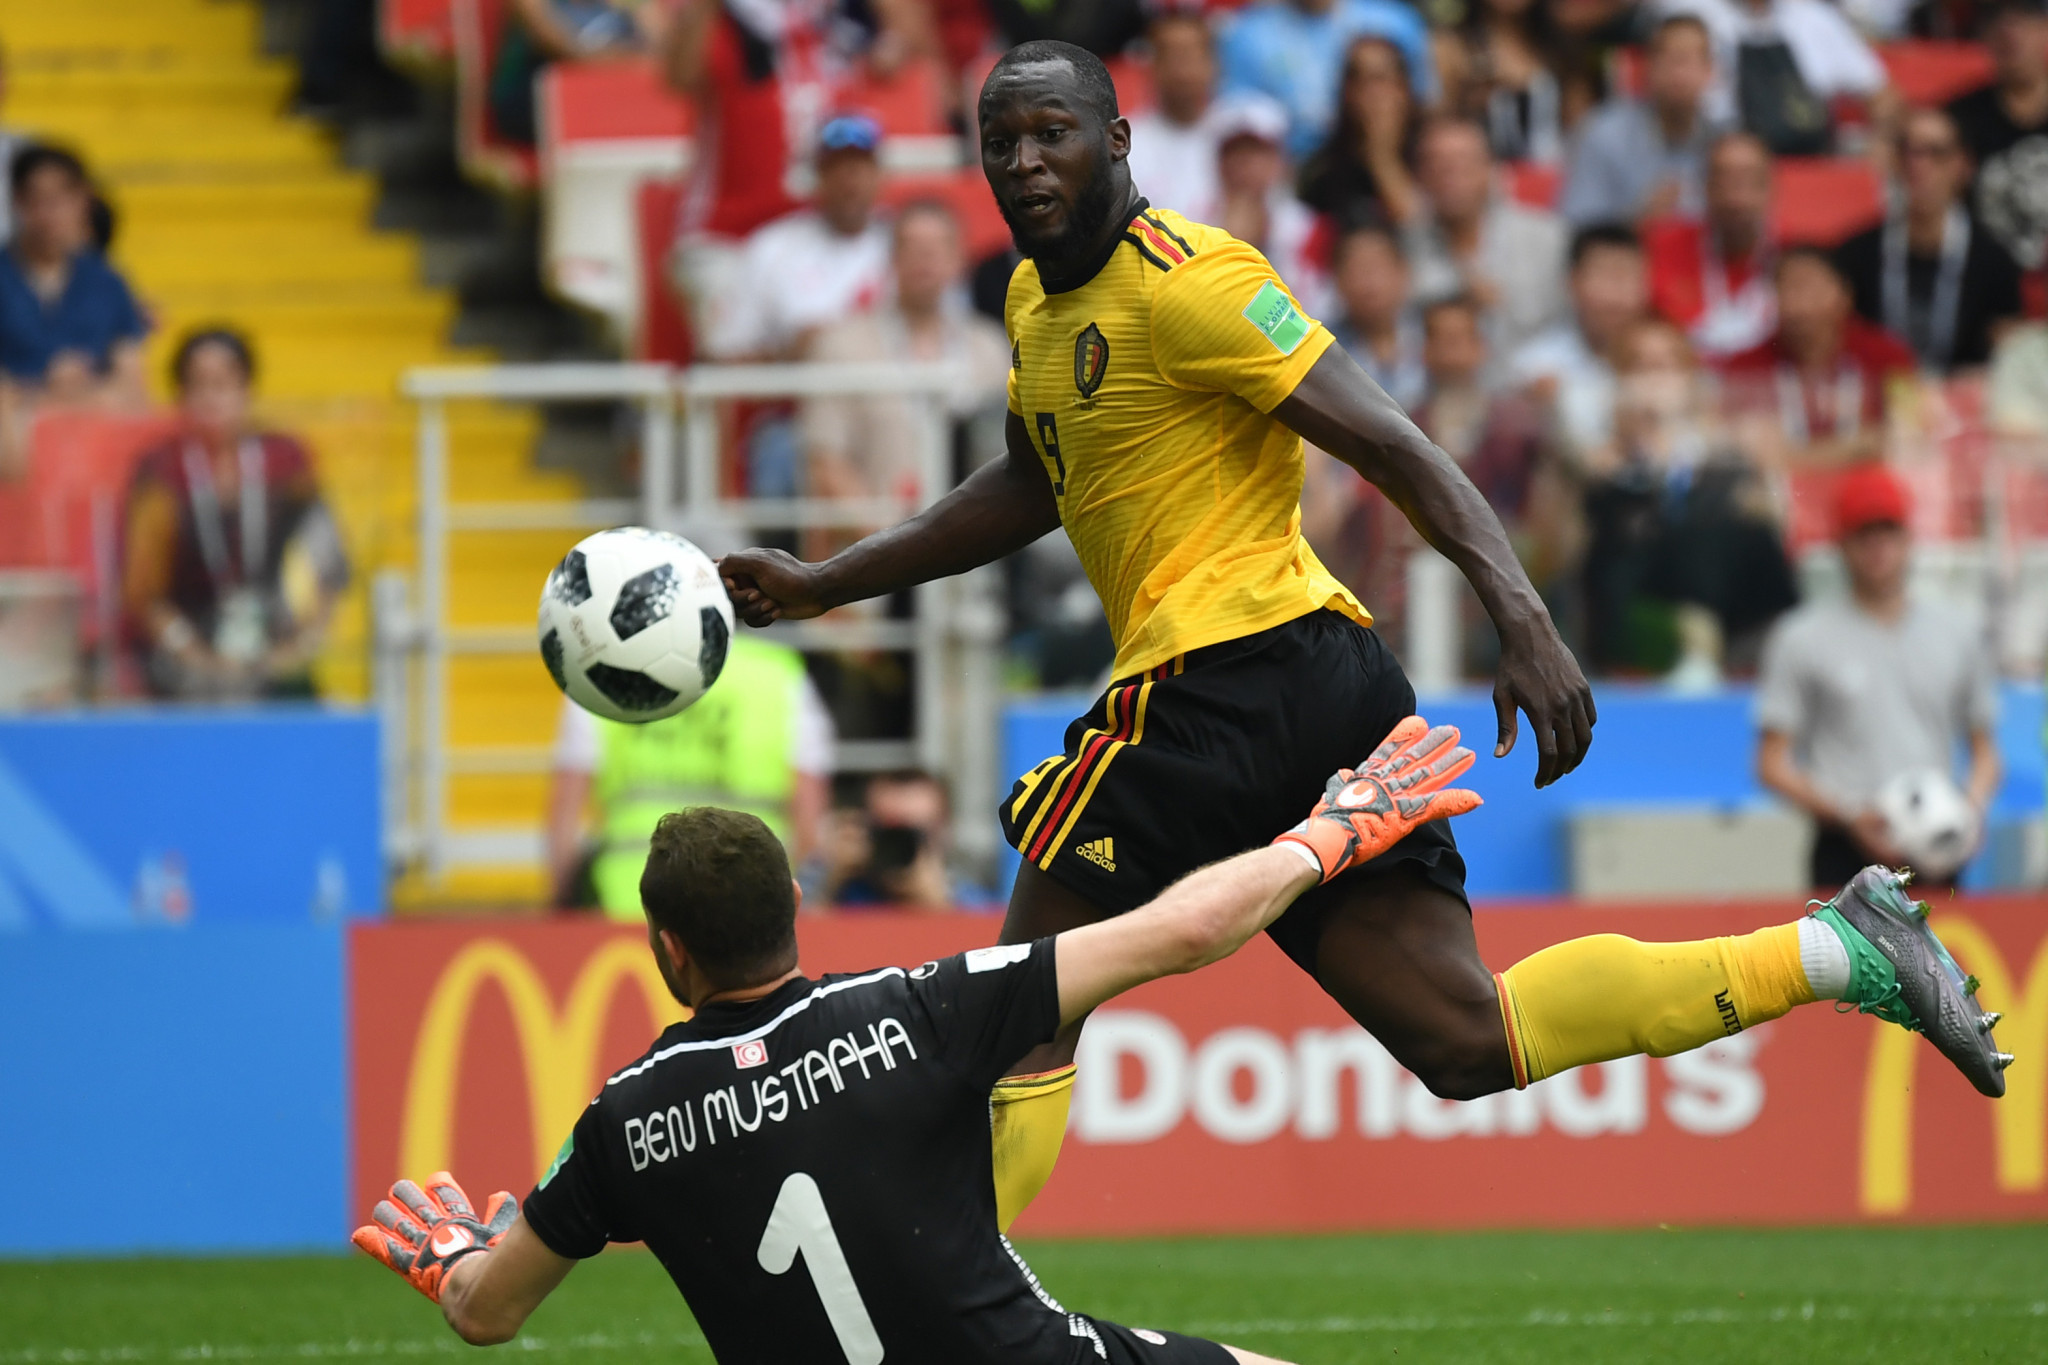 Romelu Lukaku struck twice as Belgium eased past Tunisia in Group G ©Getty Images